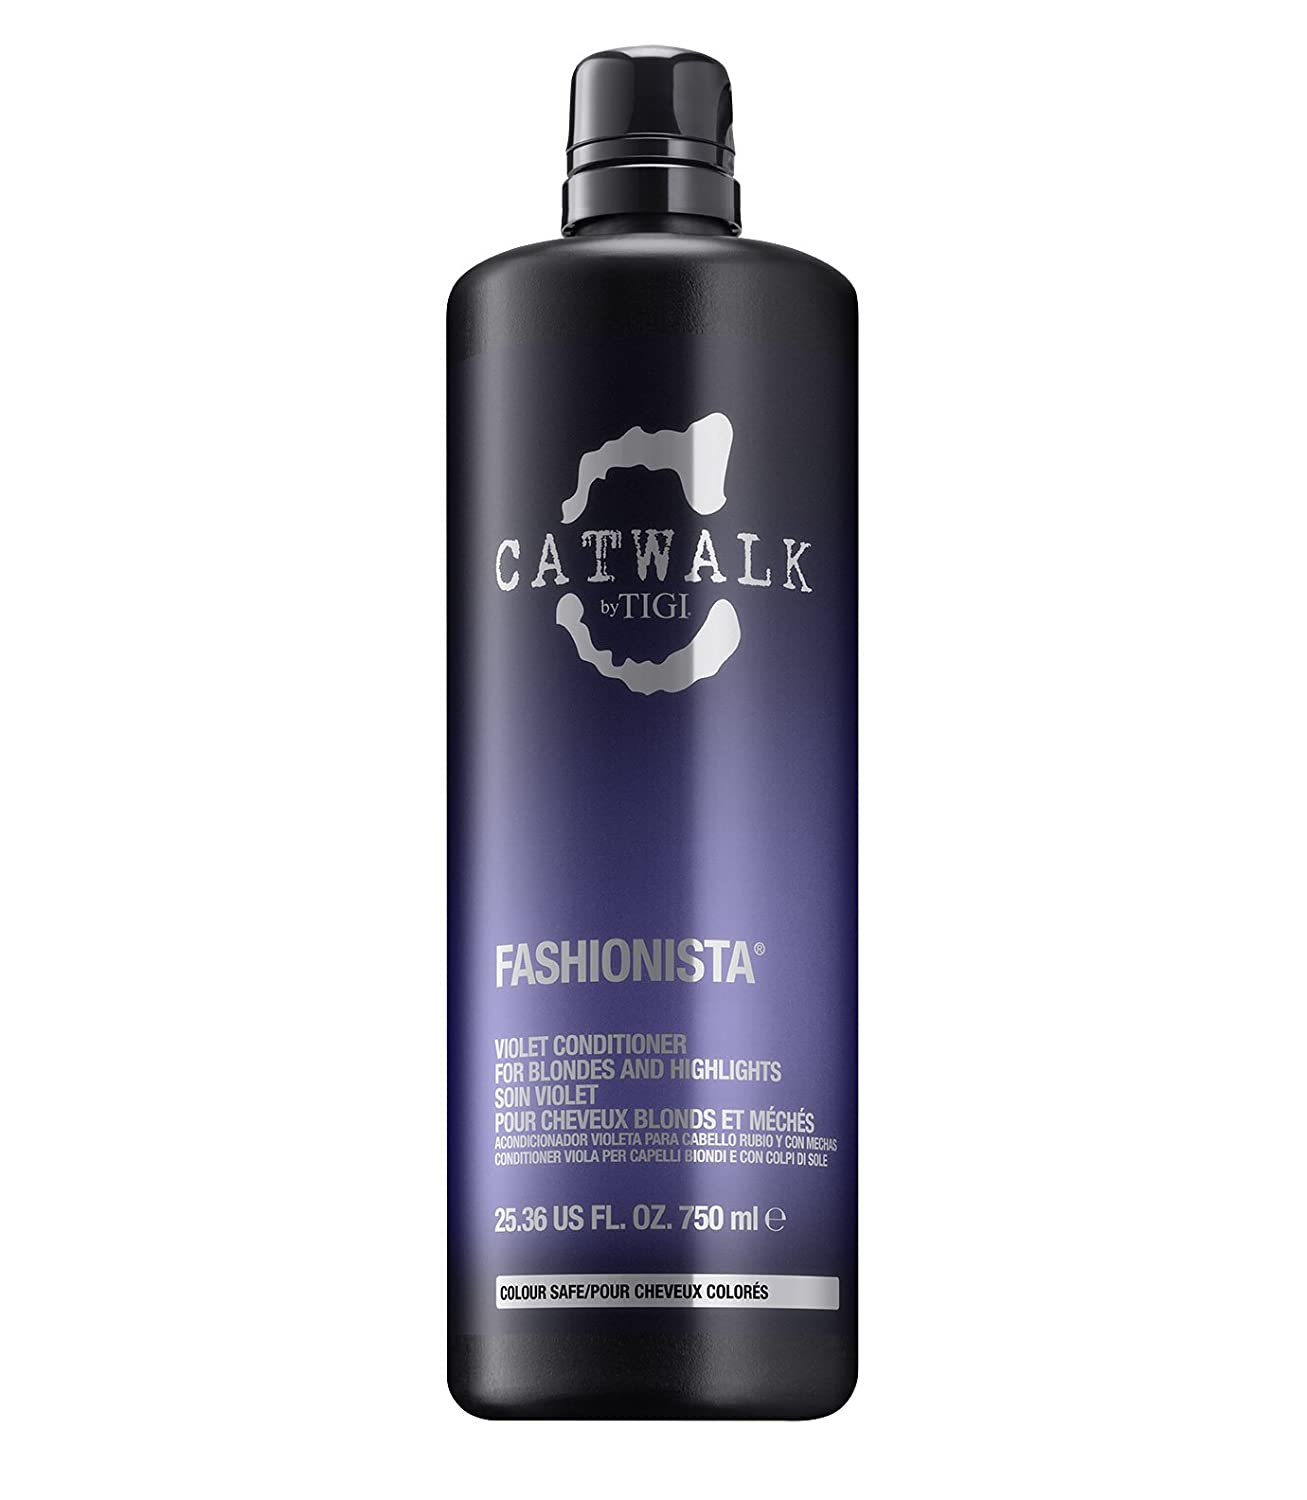 CATWALK by TIGI Fashionista Violet Conditioner TIGI Linea 330376 53505_-750ml